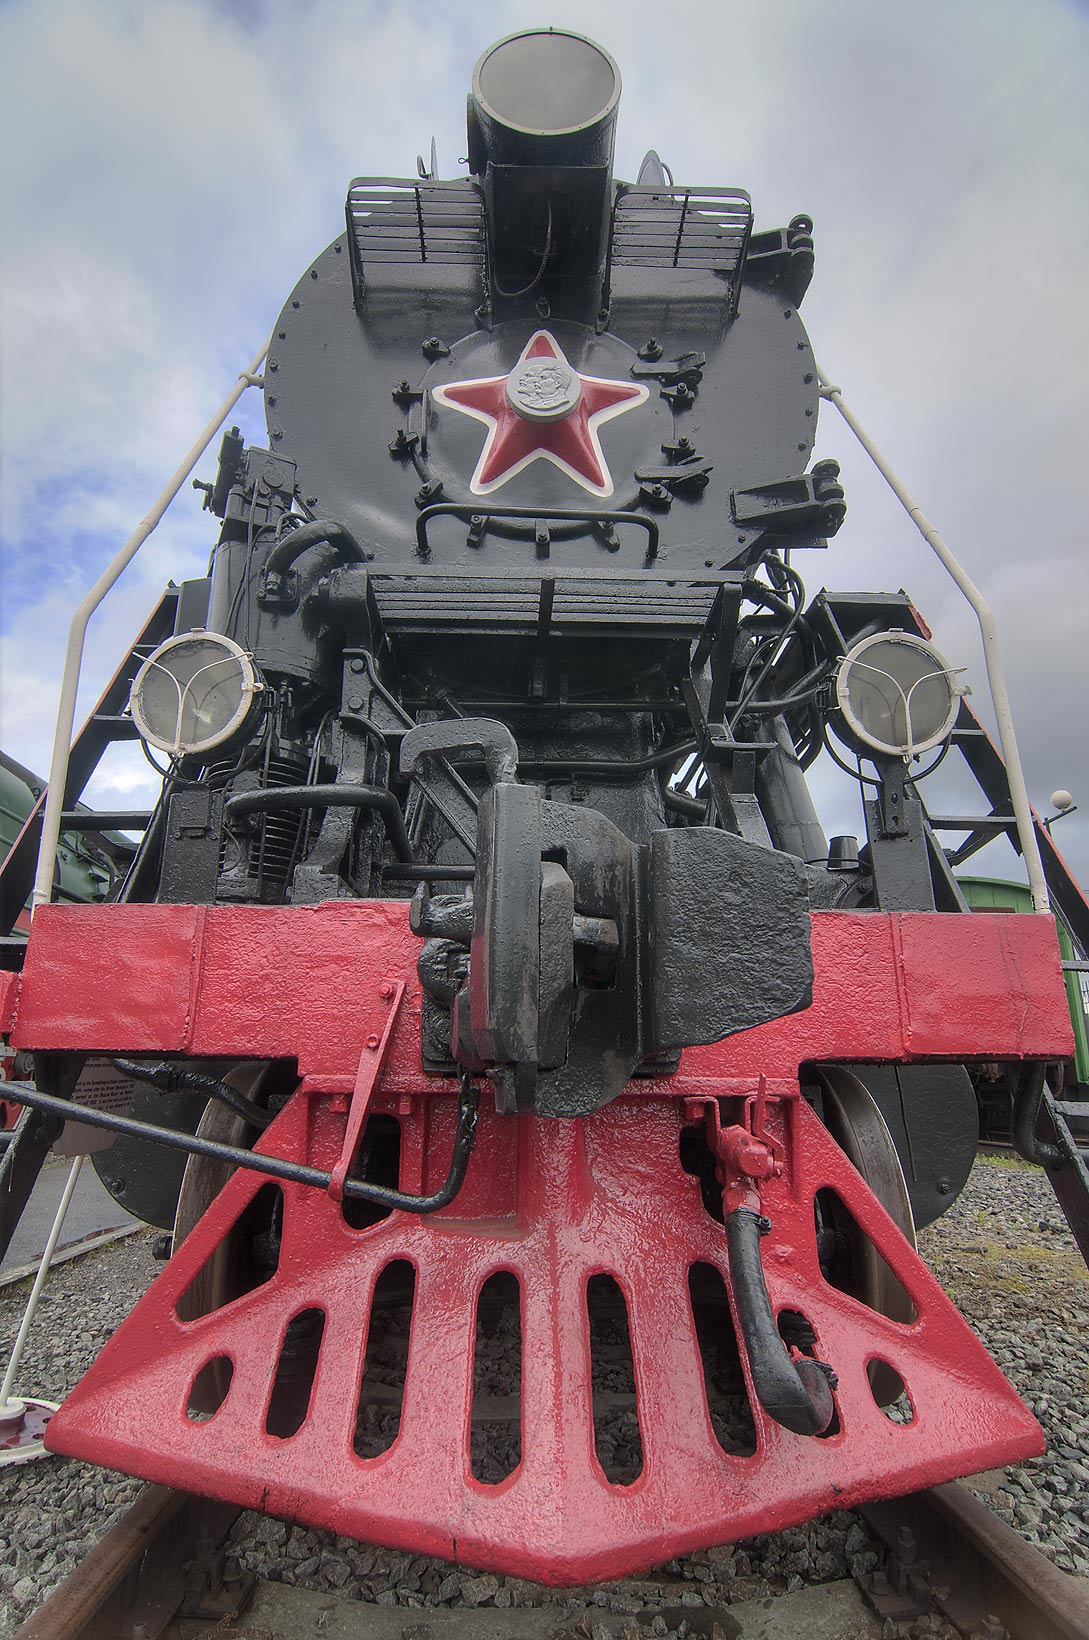 Steam train in a railroad museum on Varshavsky Train Station. St.Petersburg, Russia